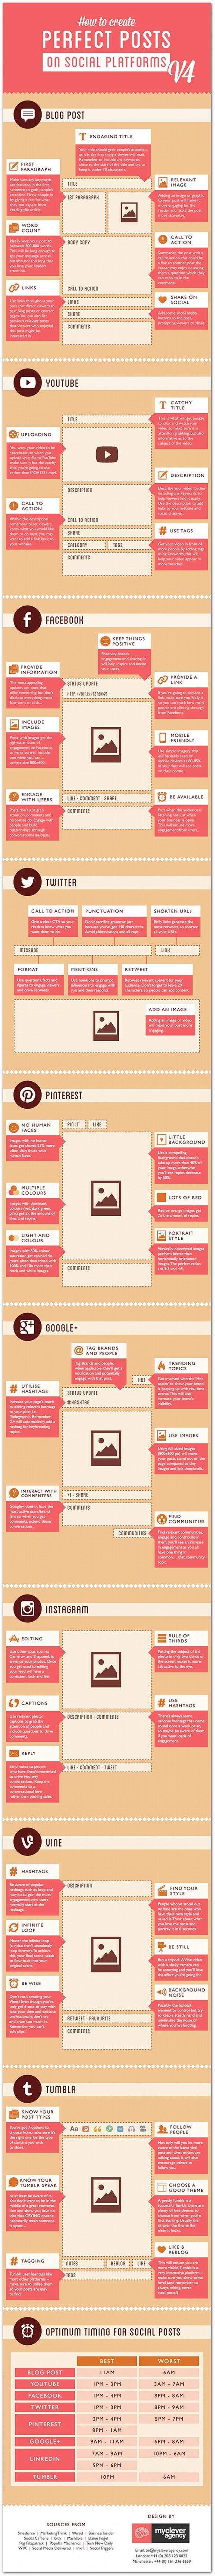 A Guide to Perfect Social Media Posts (Infographic)